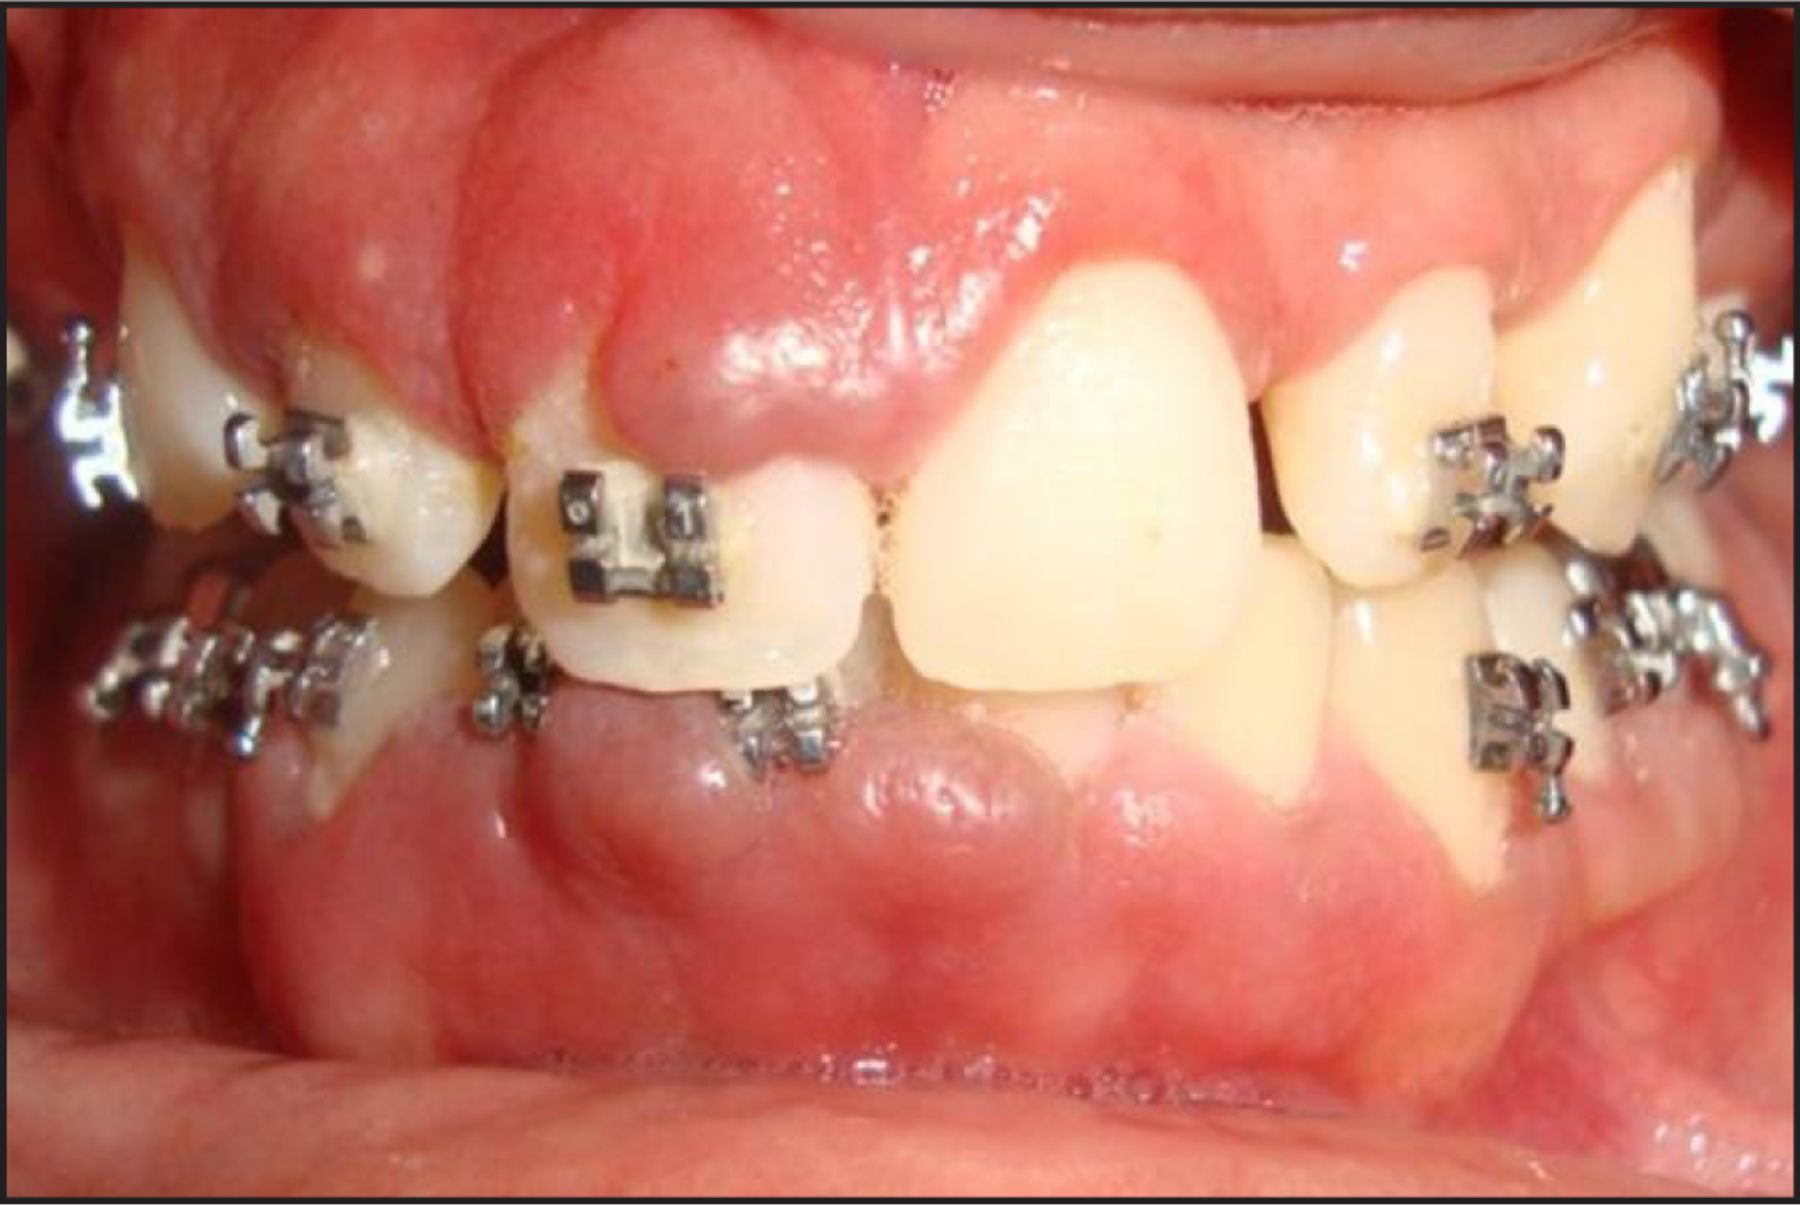 Chronic Inflammatory Gingival Enlargement Associated with ...  Chronic Inflamm...